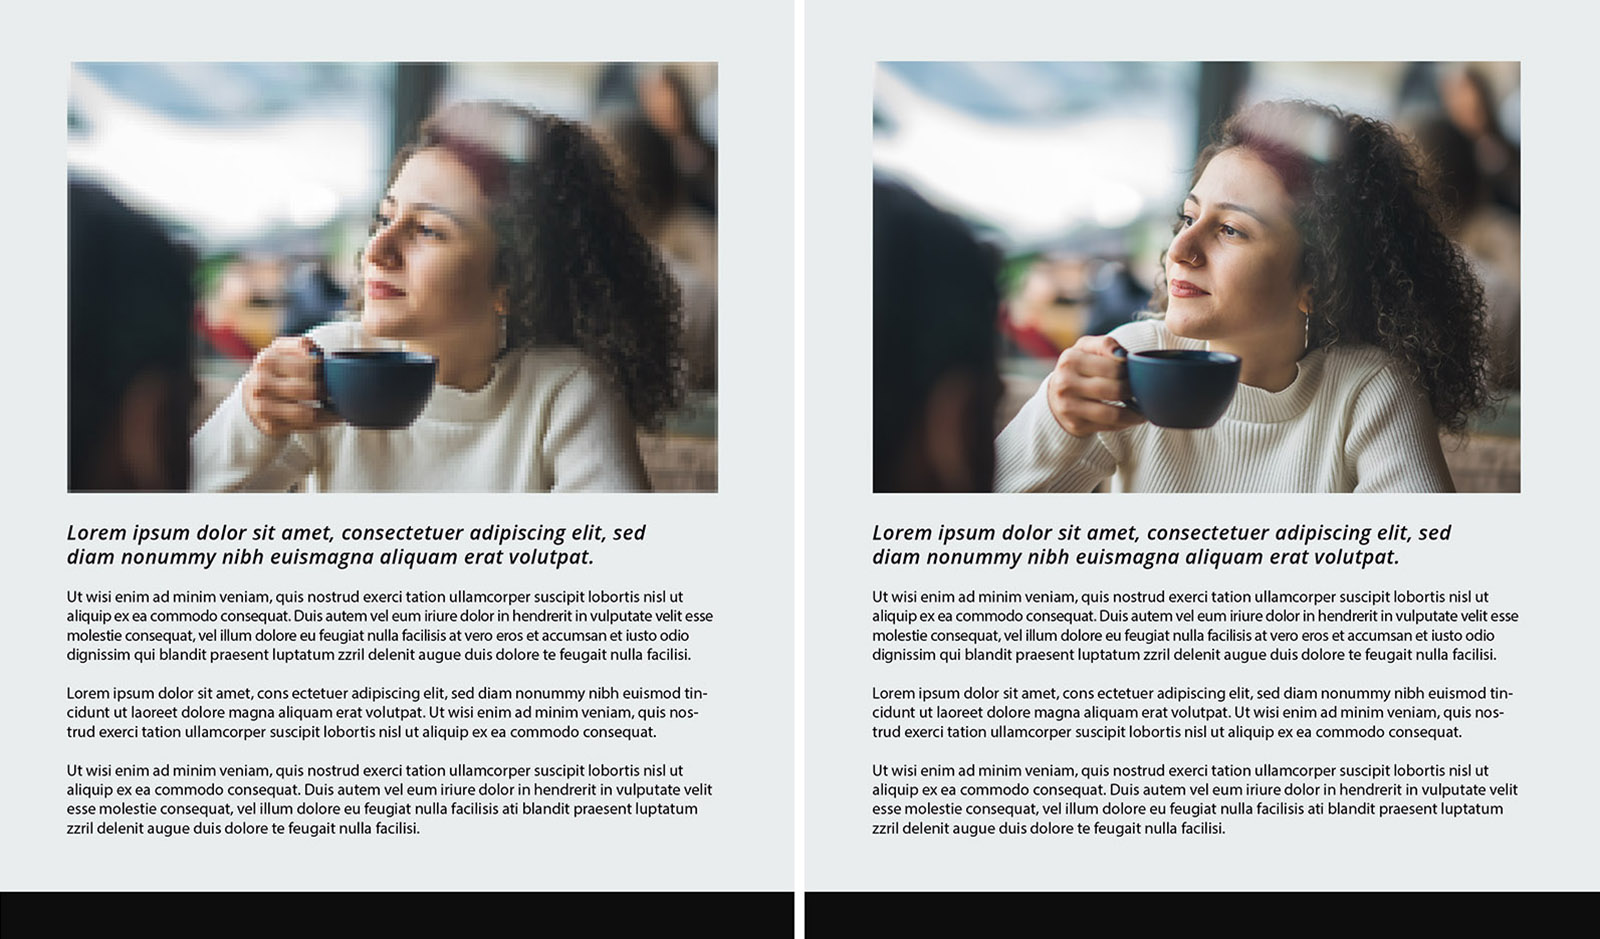 side by side comparisons of an image with a woman drinking coffee to illustrate the effects image size has when posting image to a website